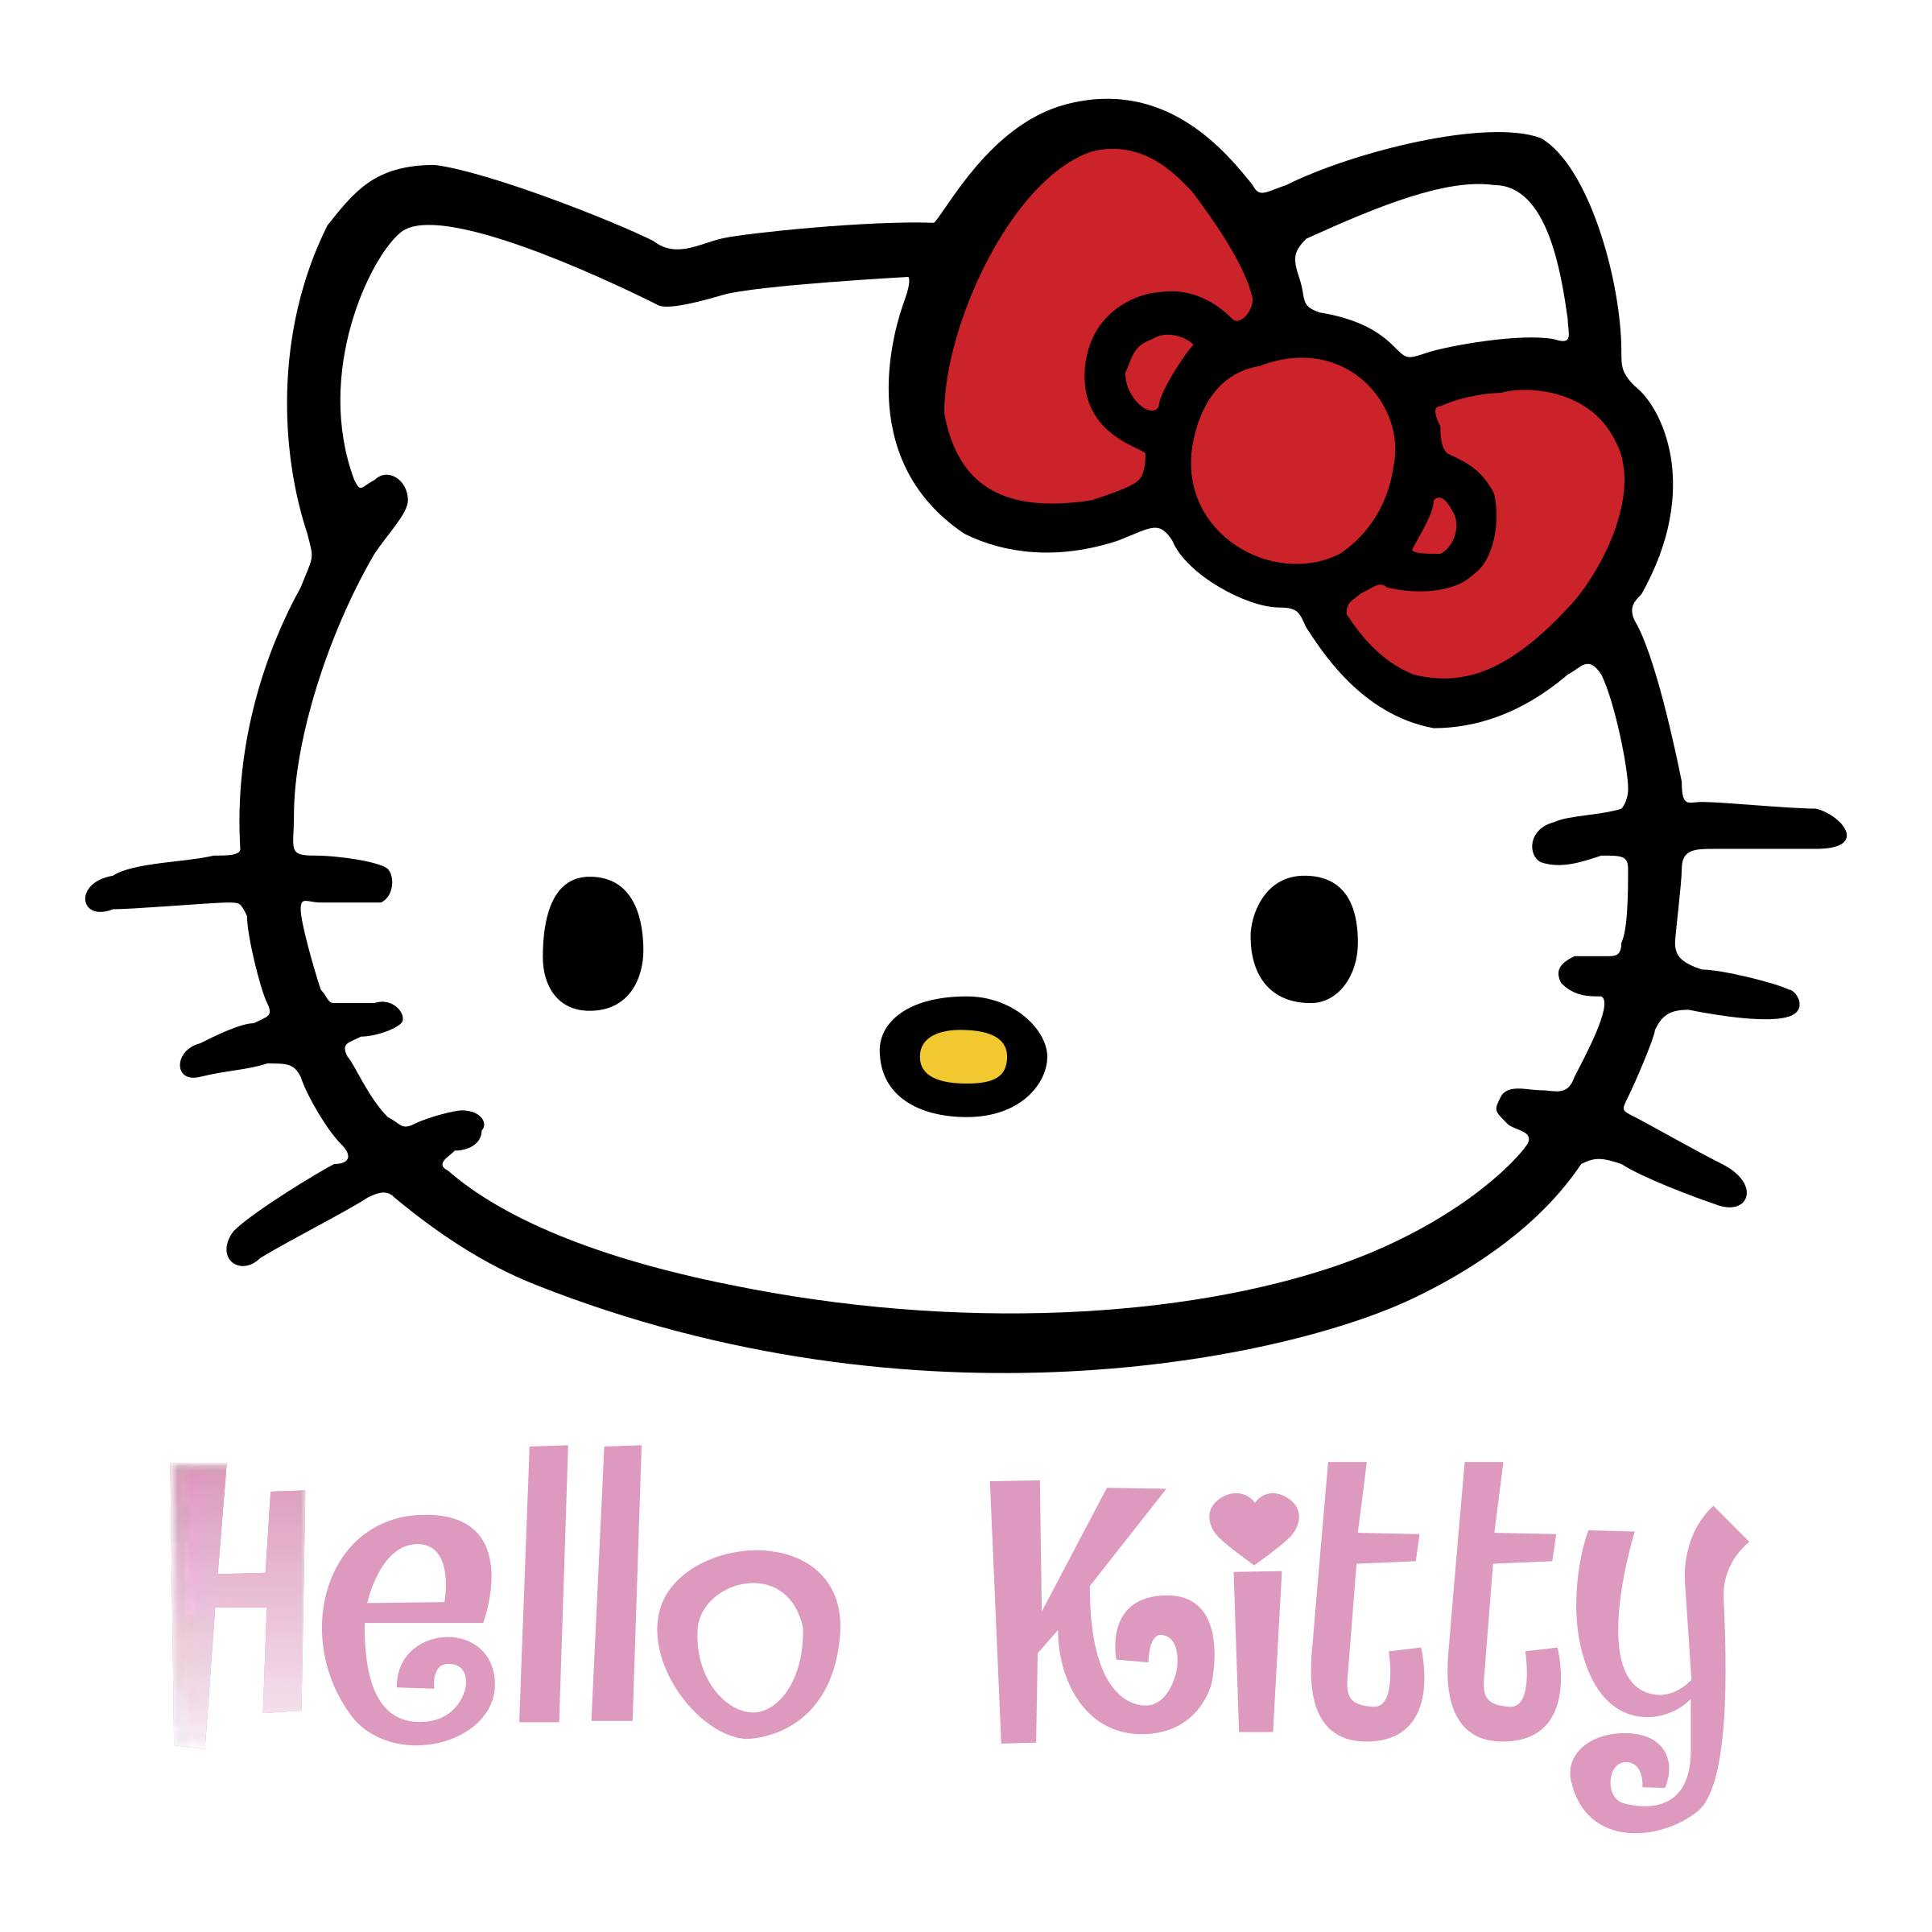 Hello Kitty Black And White Clipart at GetDrawings.com.